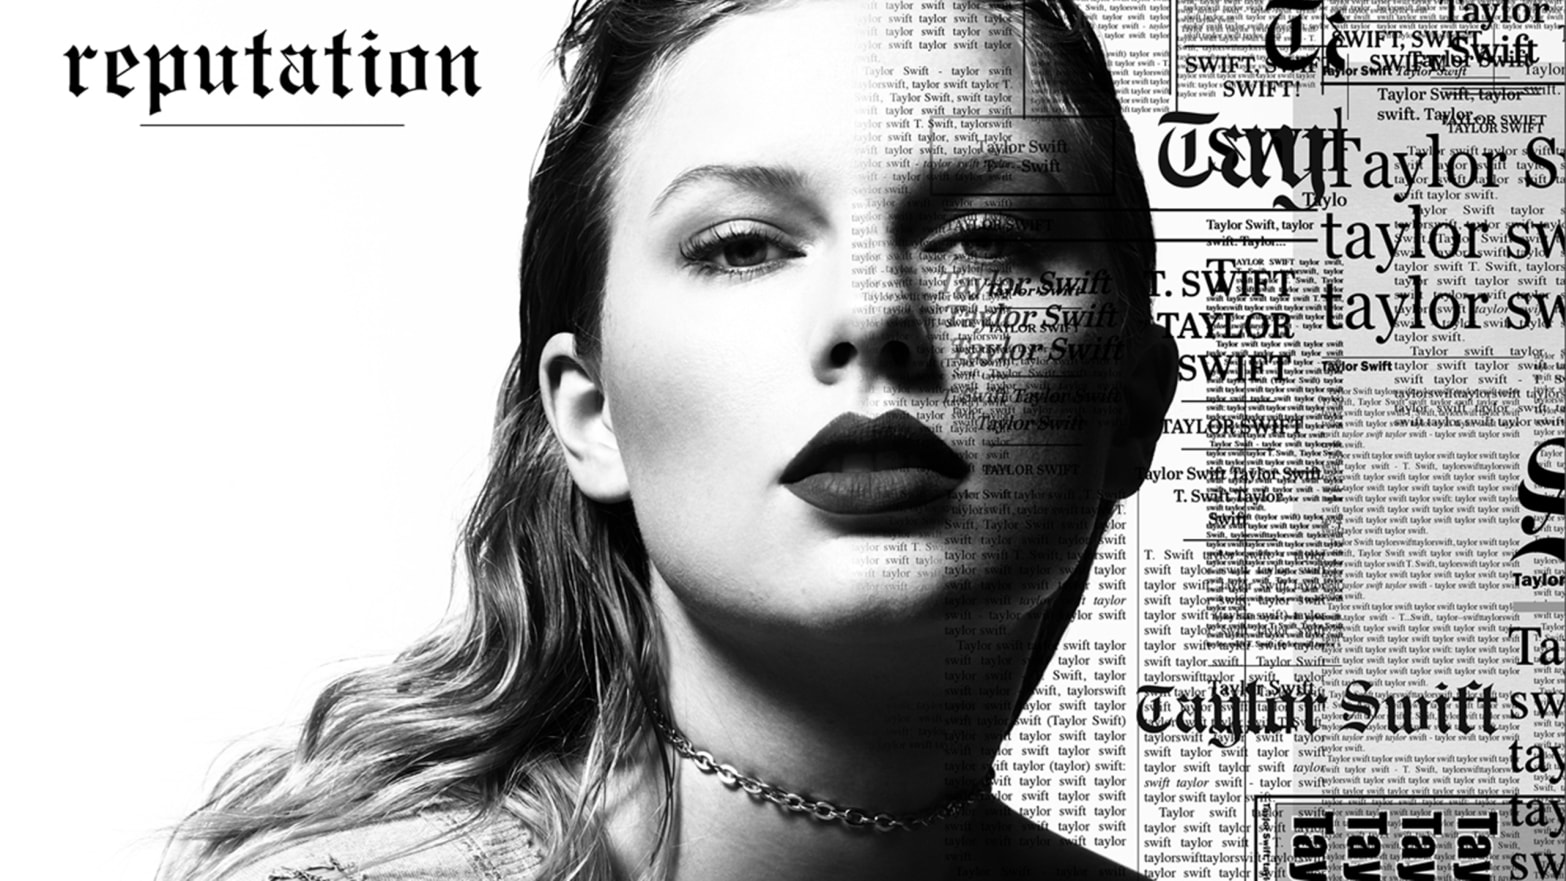 Taylor Swift's New Song 'Look What You Made Me Do' Really